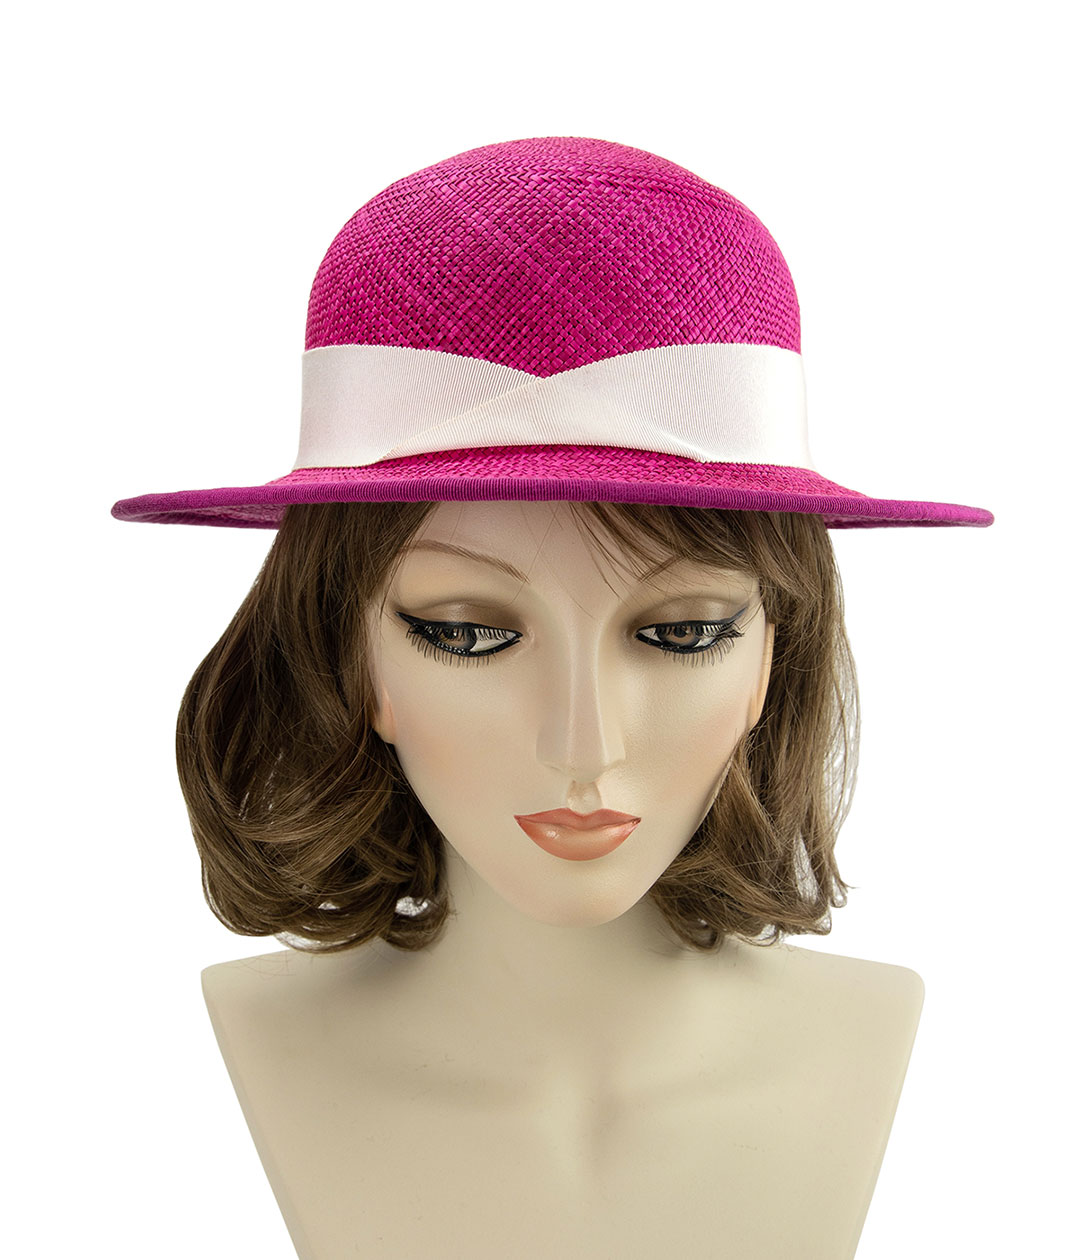 front view of hot pink straw hat on mannequin head